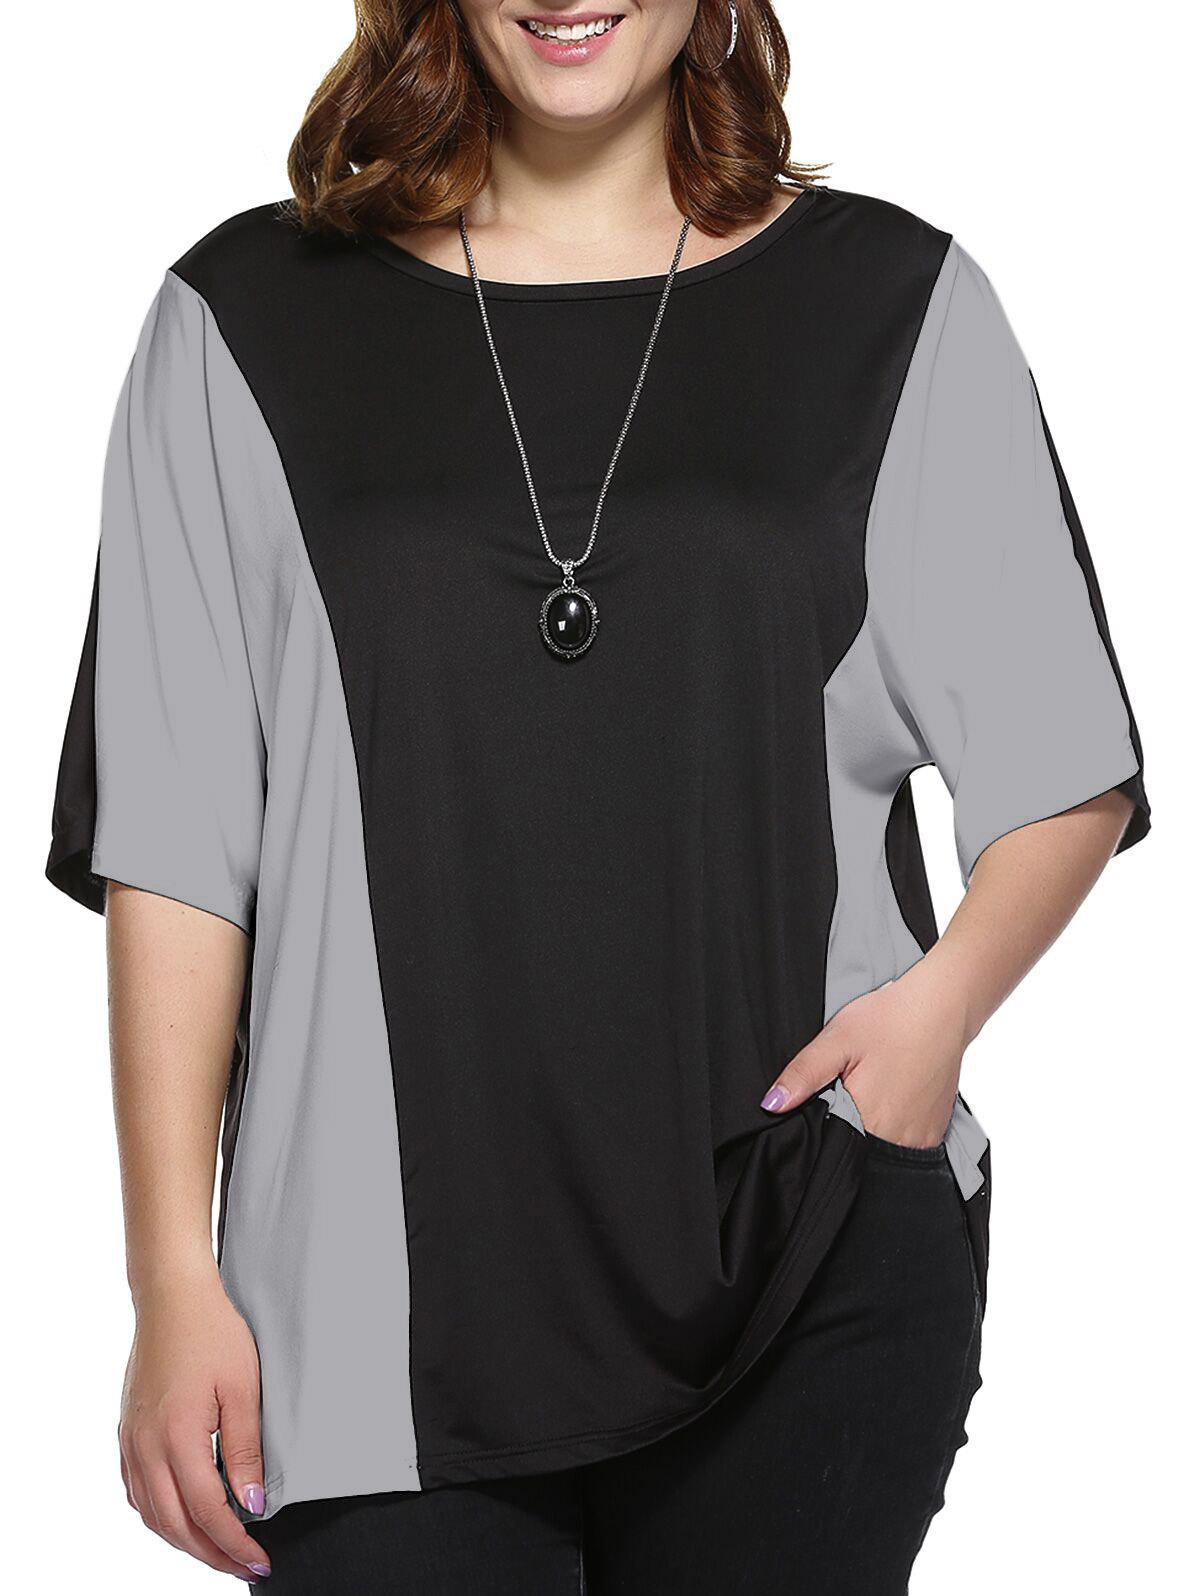 Plus Size Color Block BlouseWOMEN<br><br>Size: XL; Color: BLACK AND GREY; Material: Polyester; Shirt Length: Long; Sleeve Length: Half; Collar: Round Neck; Style: Casual; Season: Summer; Pattern Type: Others; Weight: 0.229kg; Package Contents: 1 x Blouse;